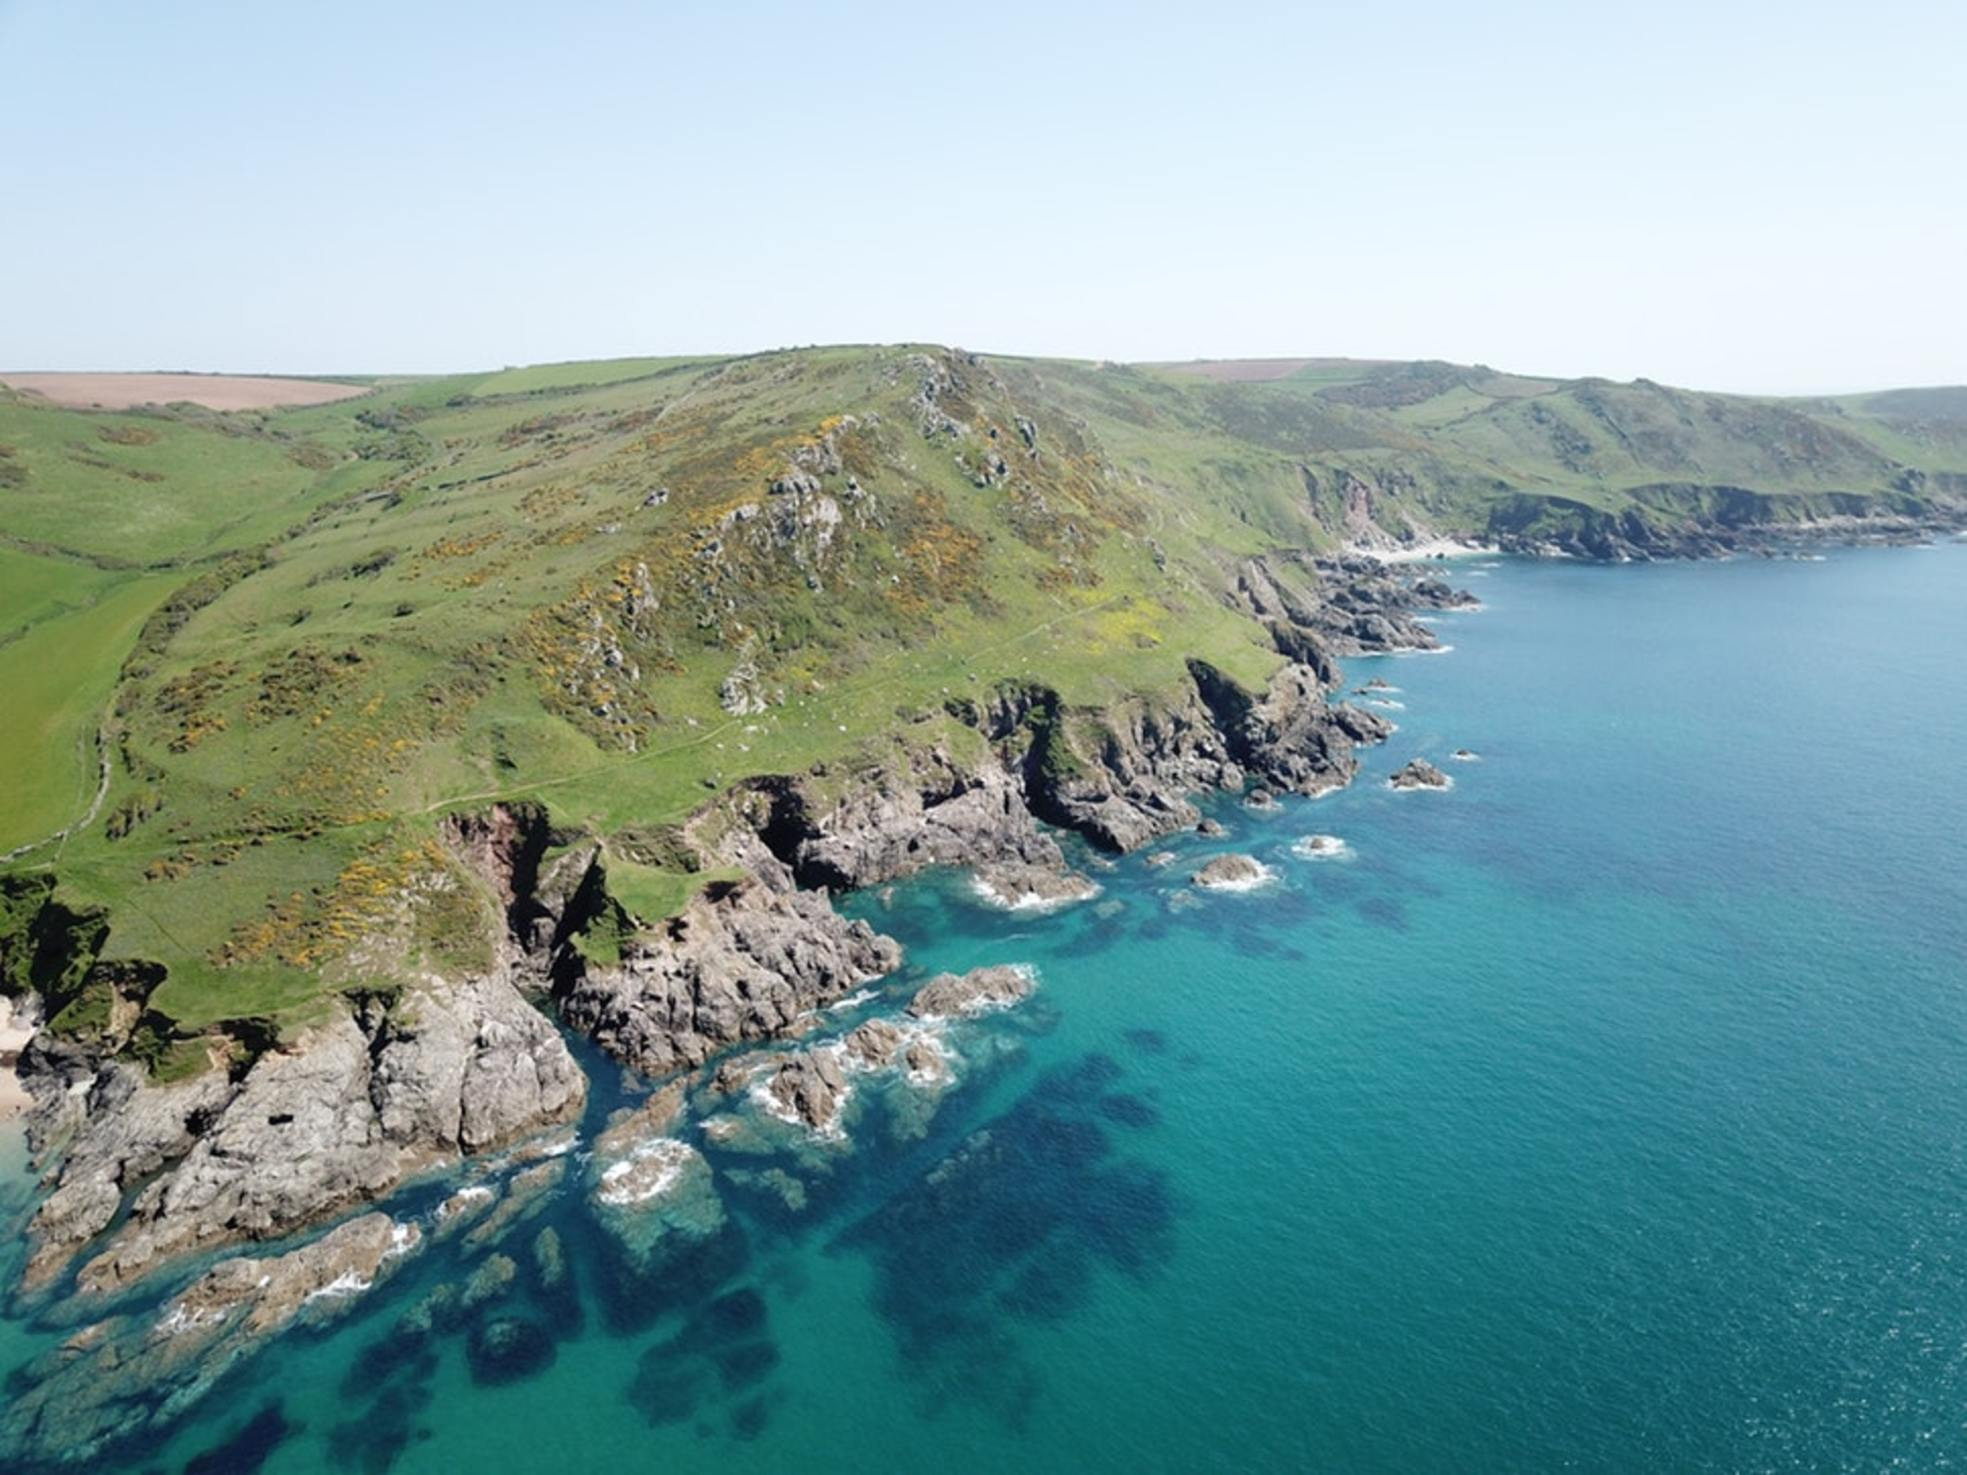 The rugged coast of Devonshire